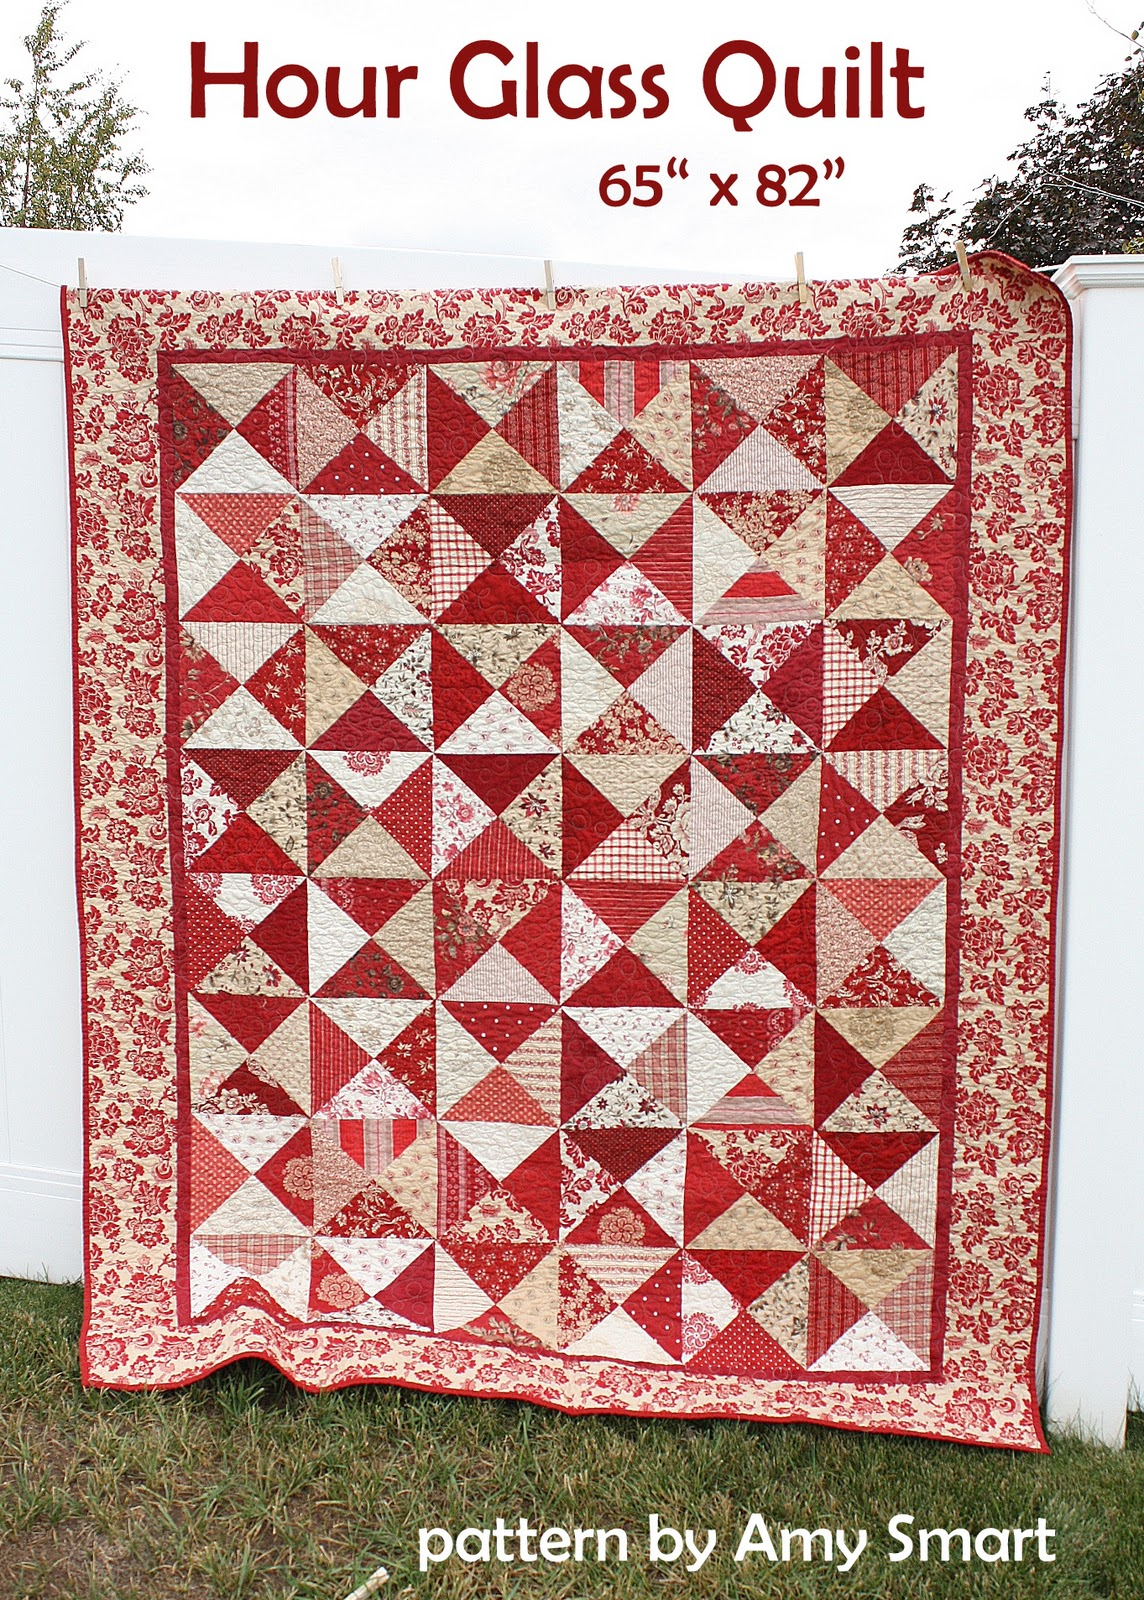 Two New Patterns Diary Of A Quilter A Quilt Blog